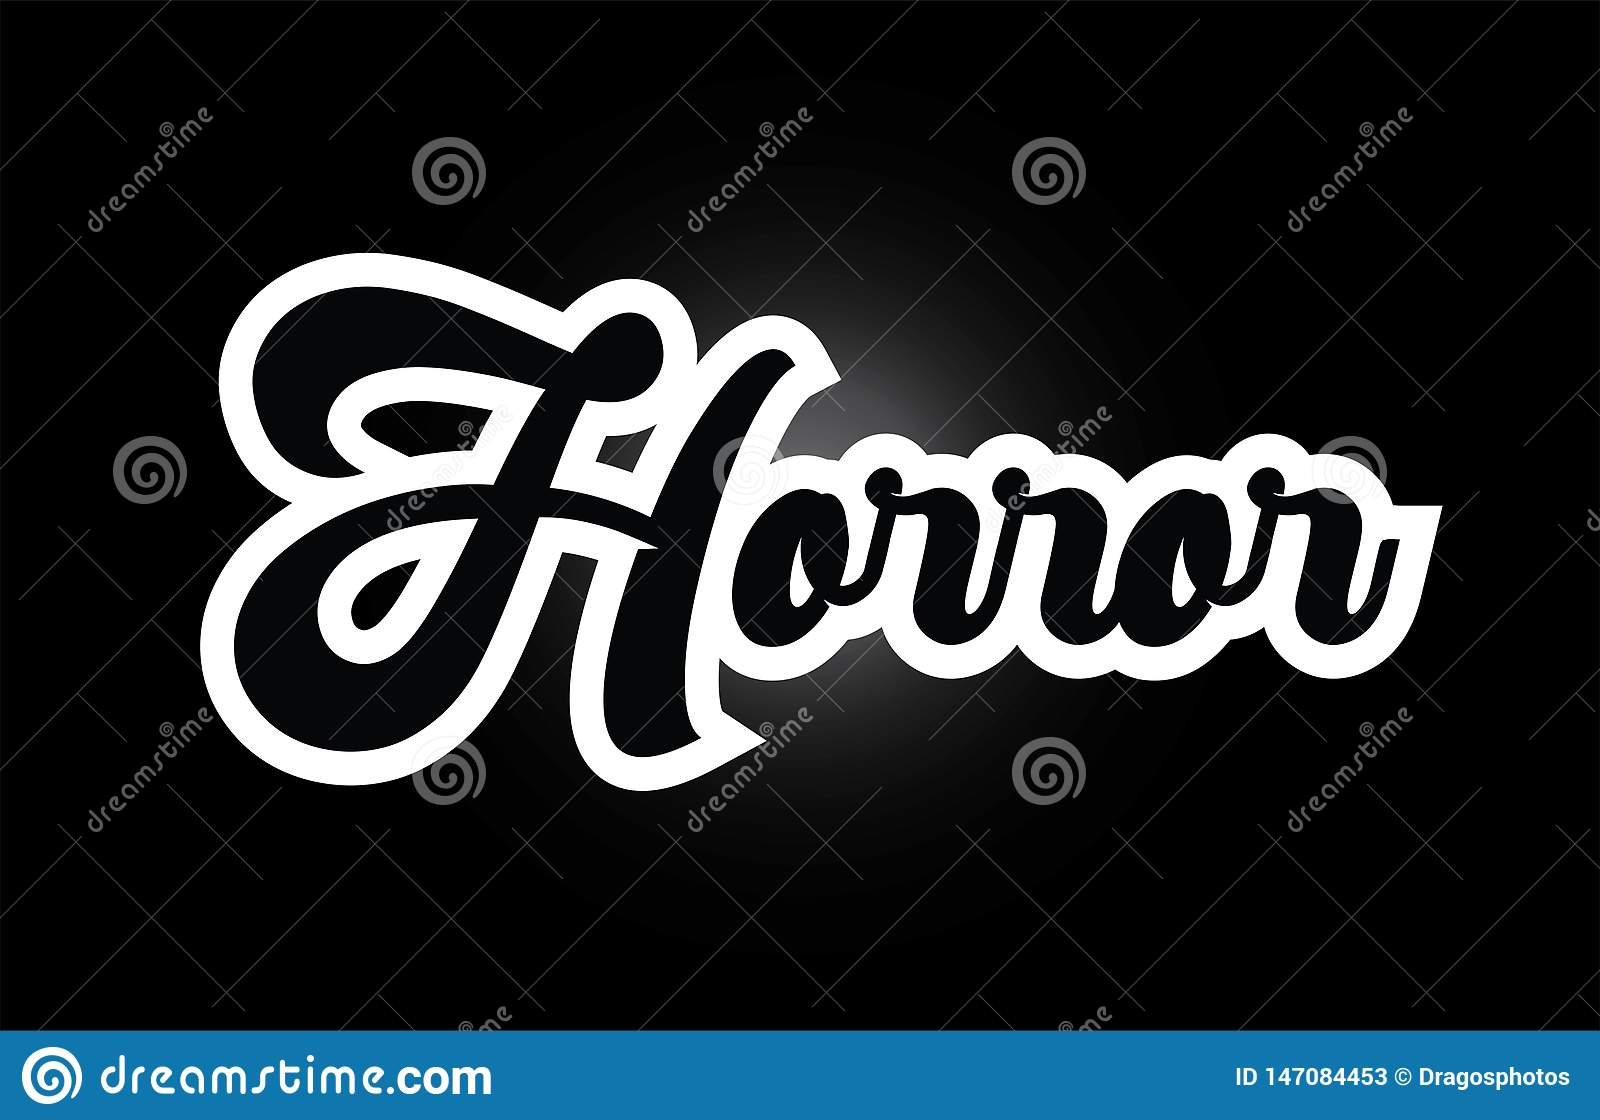 Black And White Horror Hand Written Word Text For Typography Logo Icon Design Stock Illustration Illustration Of Word Black 147084453,Typography Logo Design Inspiration